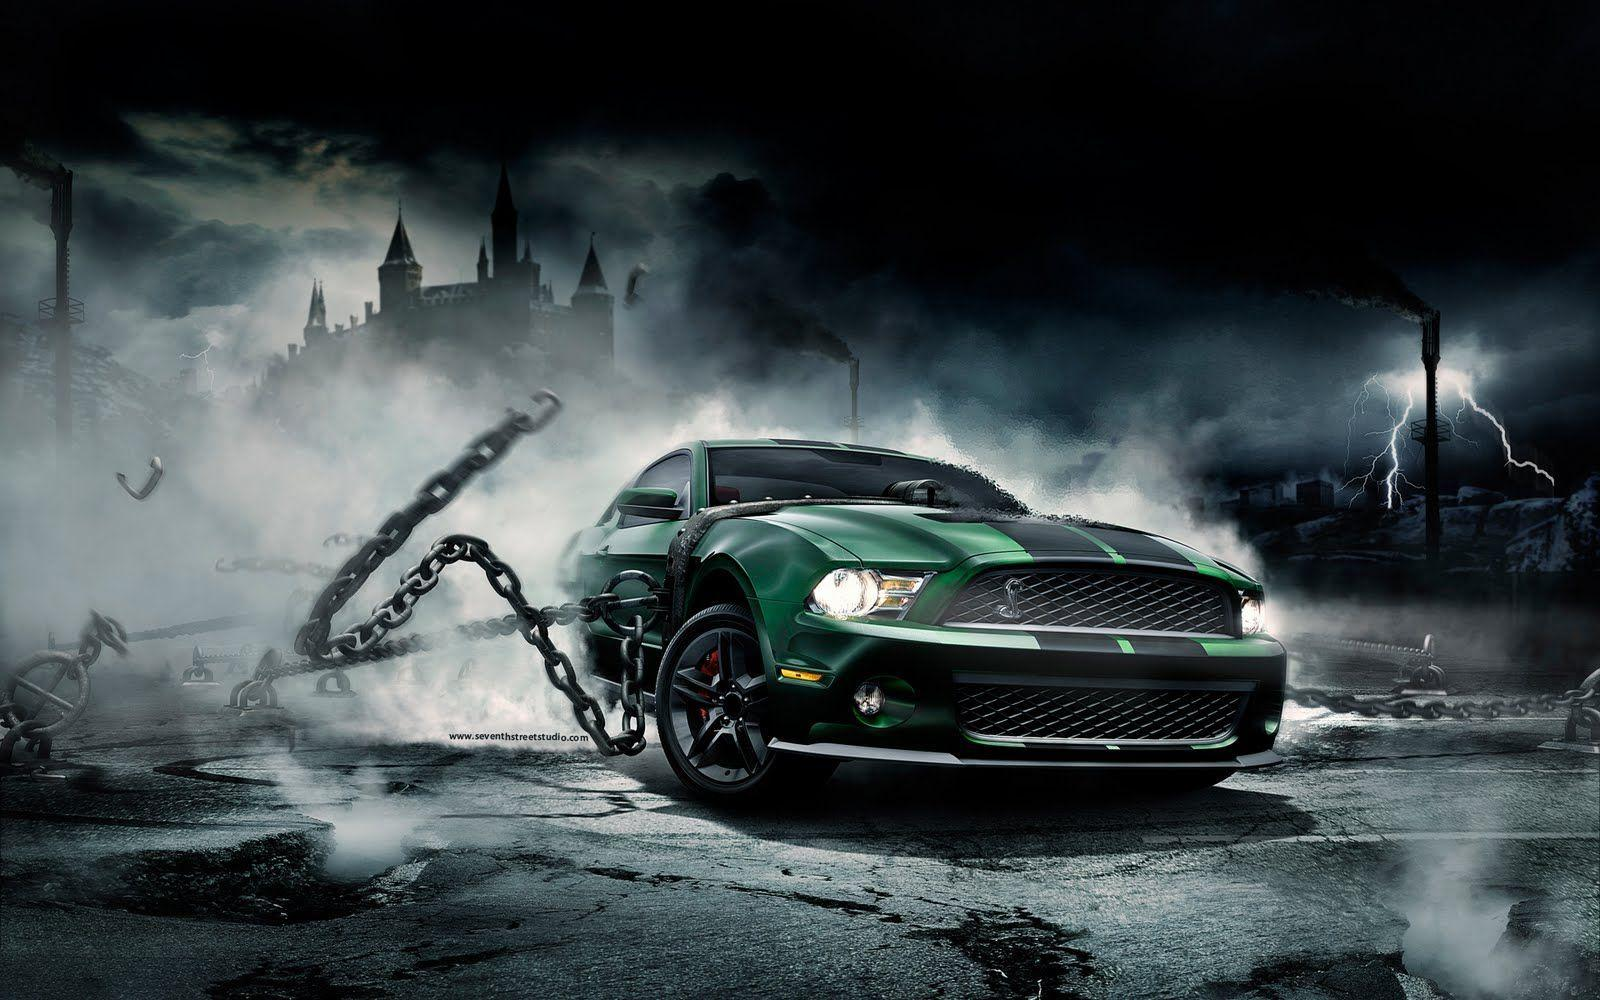 Muscle Car Wallpaper - Cars Wallpapers (8896) ilikewalls.